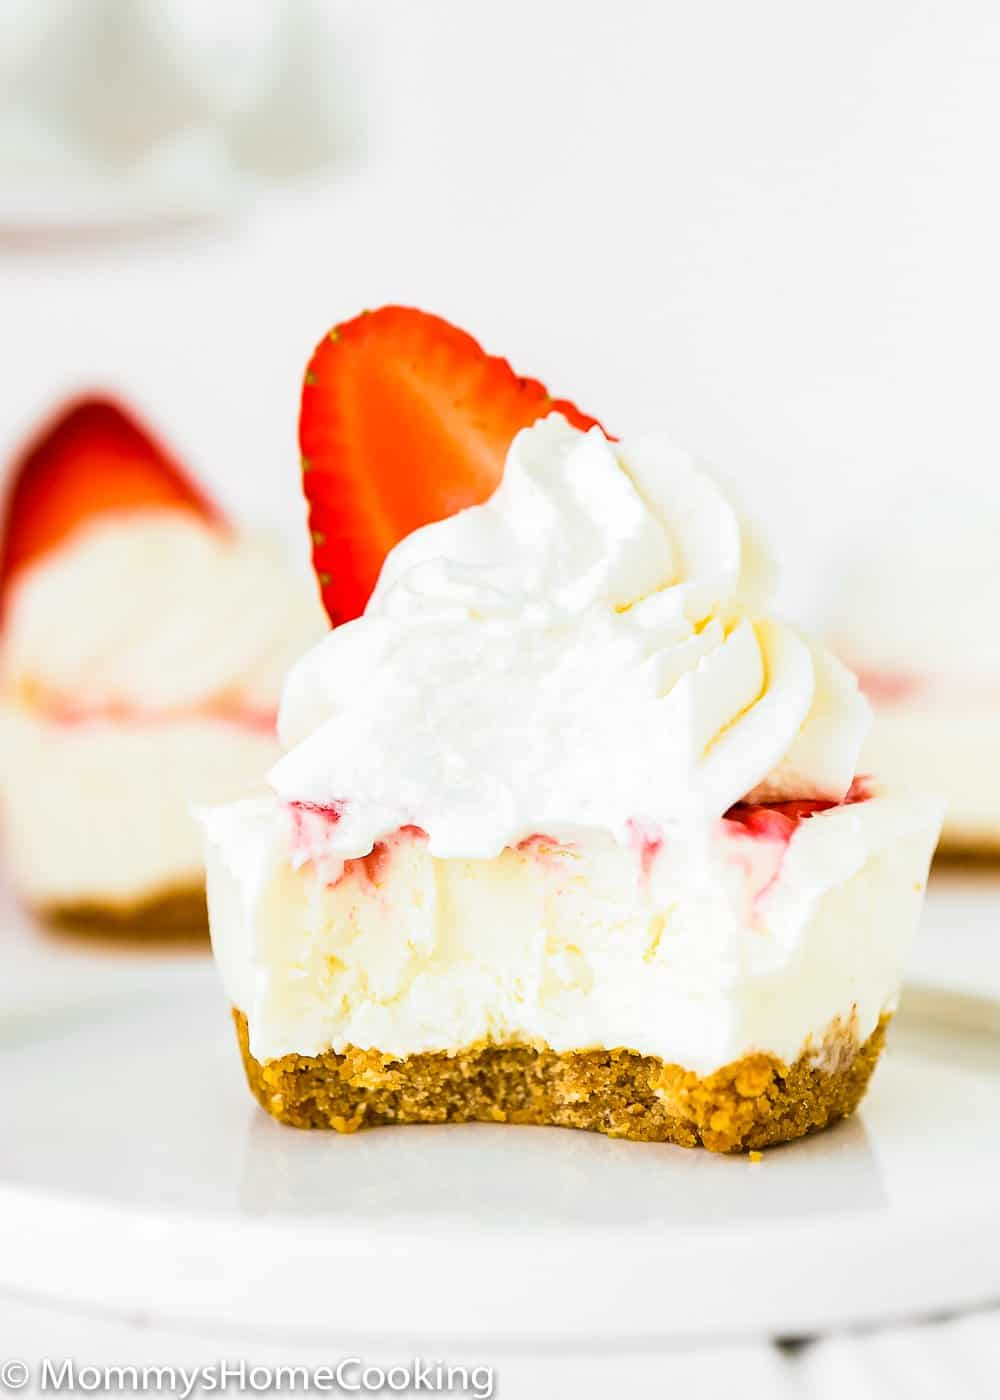 Mini Greek Yogurt Strawberry Cheesecake bitten